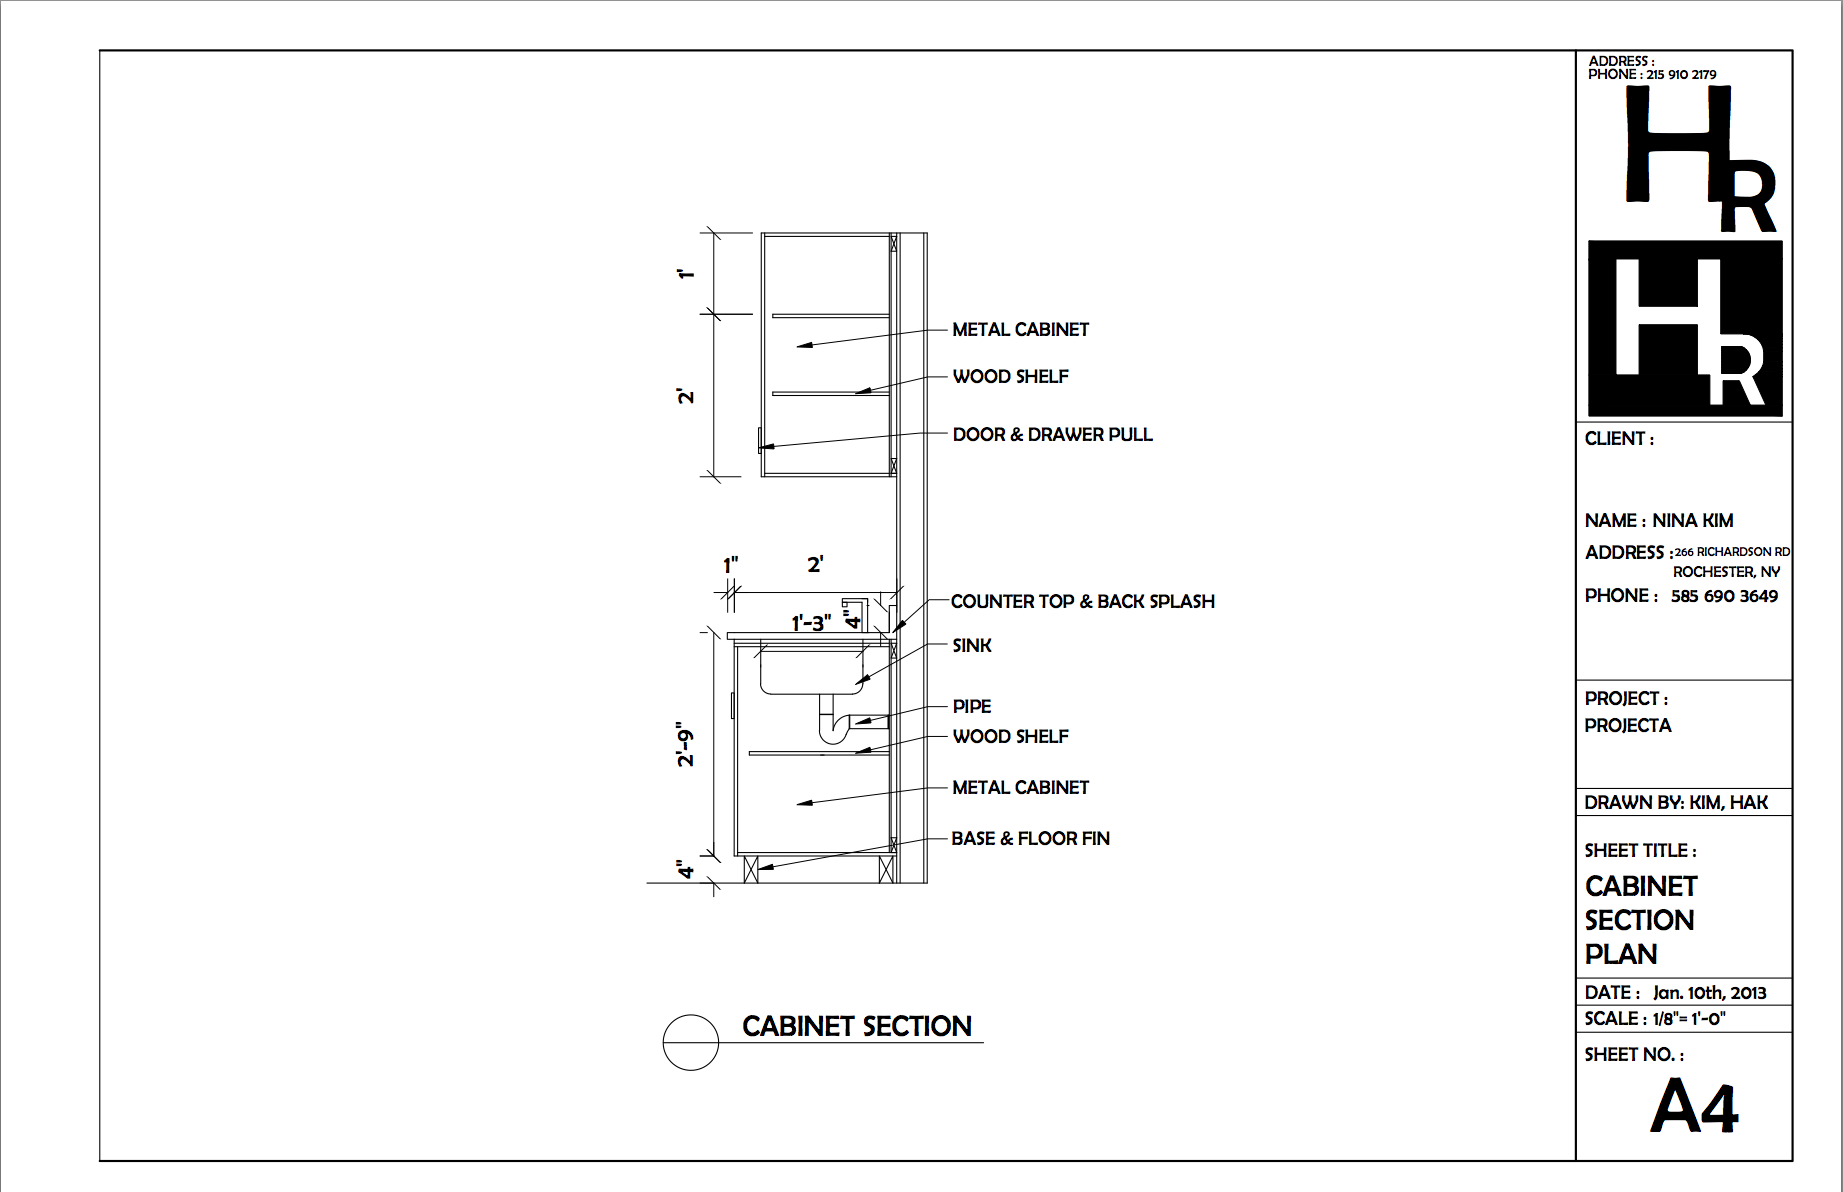 Bathroom section drawing - Cabinet Section Drawing